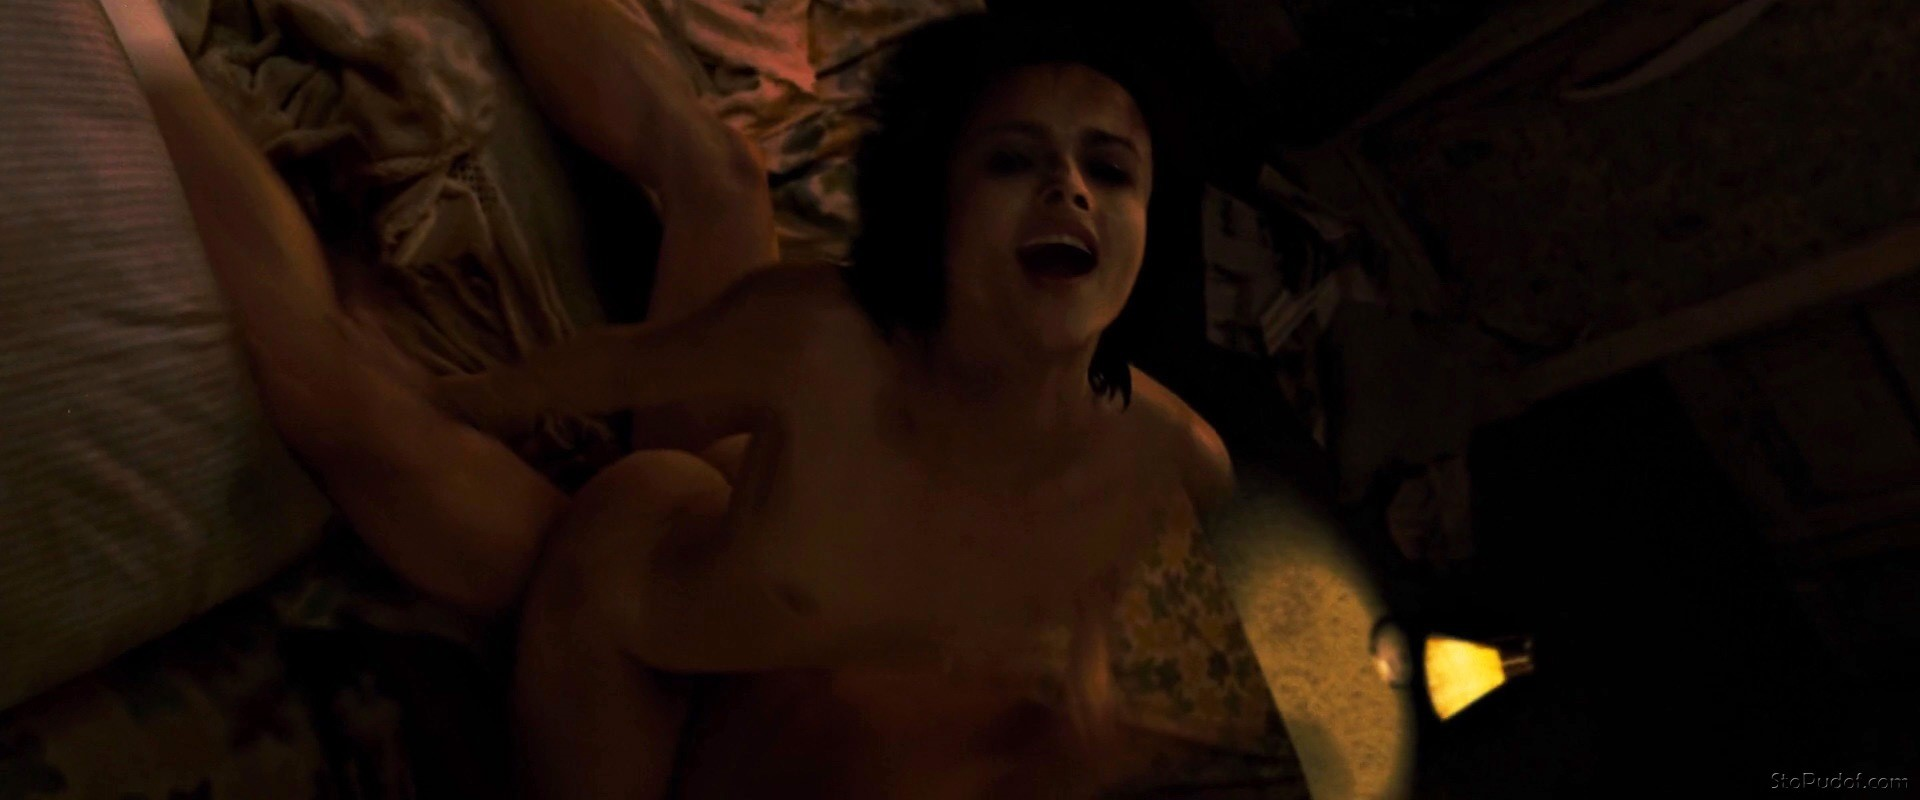 leaked nudes of Helena Bonham Carter uncensored - UkPhotoSafari